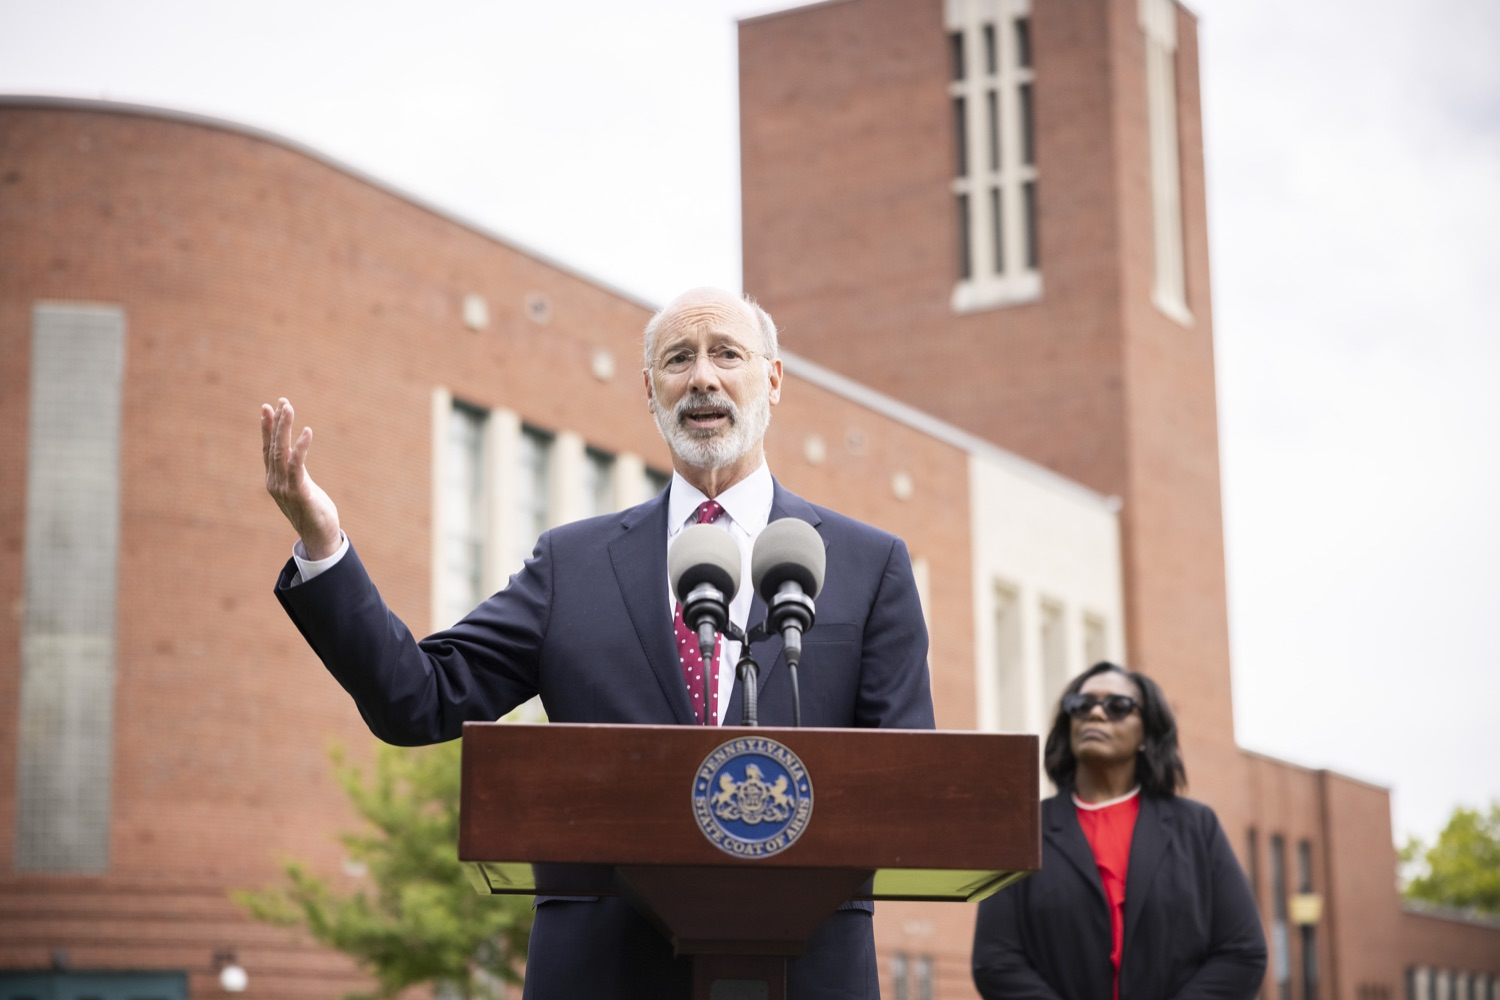 """<a href=""""https://filesource.wostreaming.net/commonwealthofpa/photo/18796_gov_charterSchool_dz_001.jpg"""" target=""""_blank"""">⇣Download Photo<br></a>Pennsylvania Governor Tom Wolf speaking with the press.  With overwhelming support among school districts for his charter school accountability plan, Governor Tom Wolf visited J.P. McCaskey High School in Lancaster today to discuss his bipartisan proposal that saves an estimated $395 million a year. Lancaster, PA  June 01, 2021"""